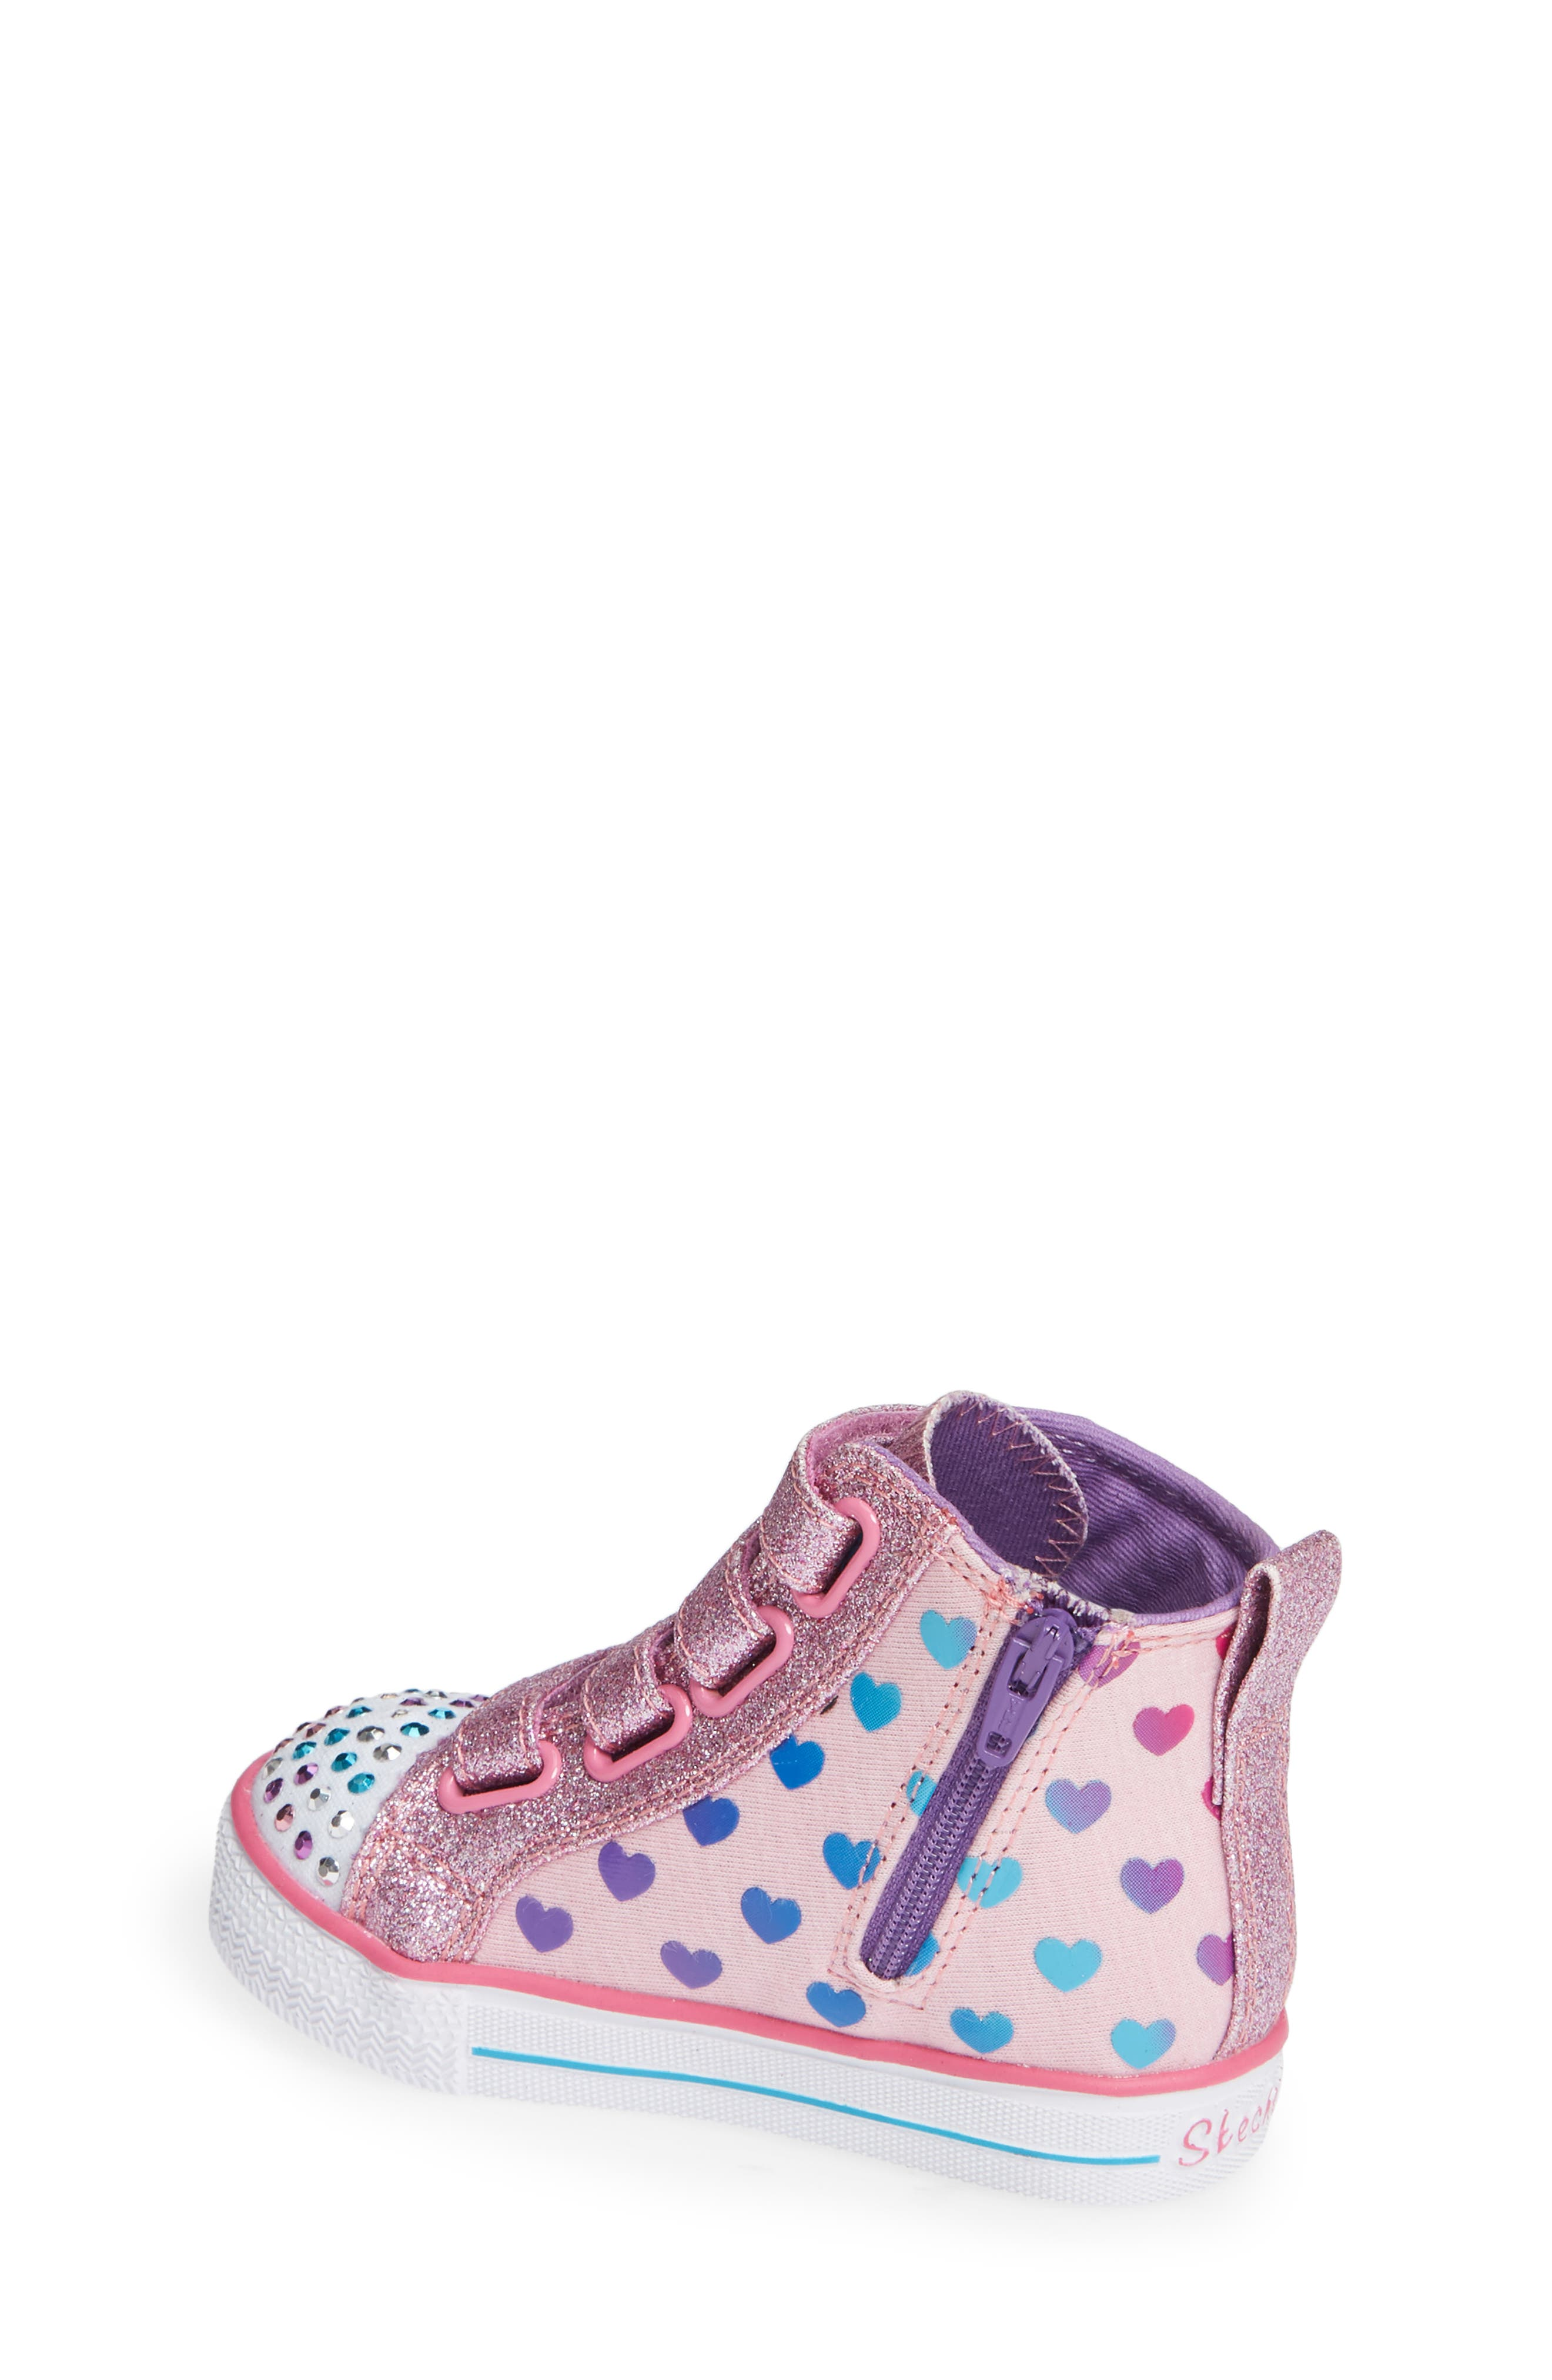 Shuffle Lite Fancy Flutters Light-Up High Top Sneaker,                             Alternate thumbnail 2, color,                             PINK/ MULTI